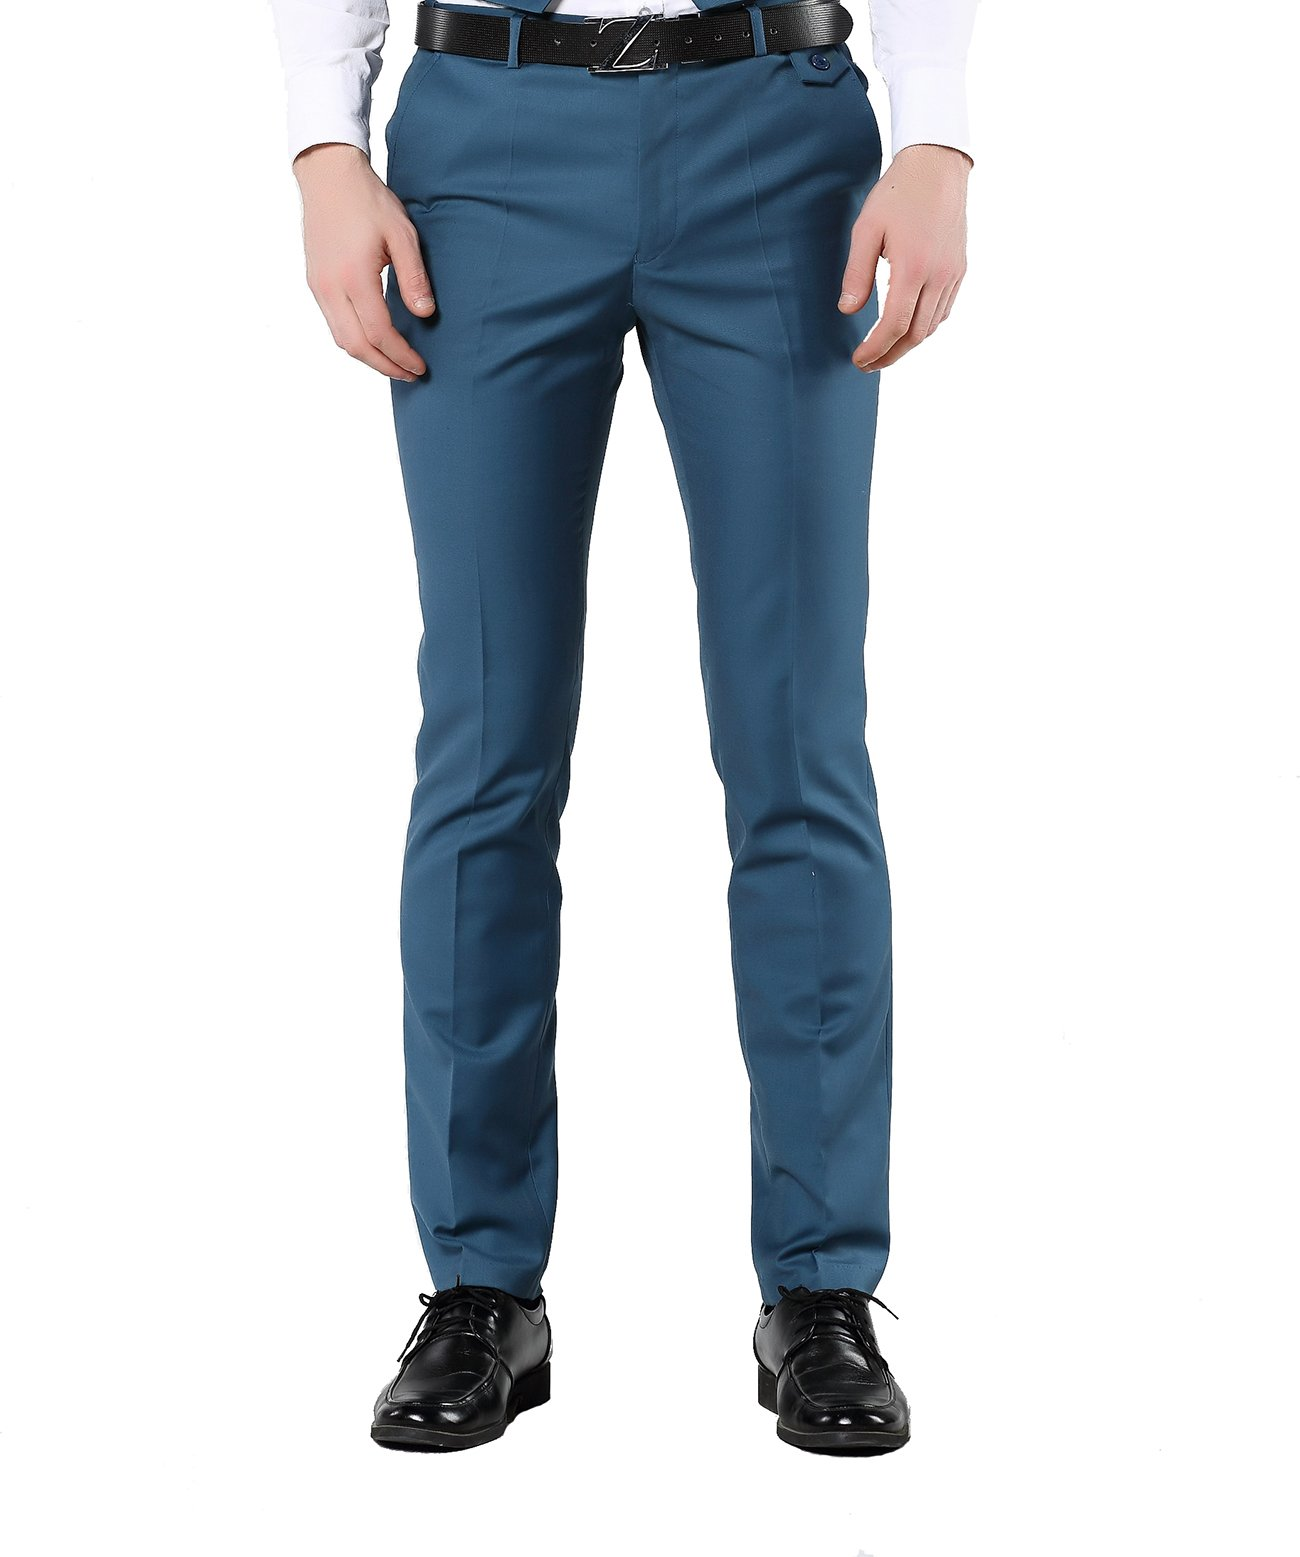 UNINUKOO Men's Colorful Casual Suit Pants Slim Fit US Size 31 (Label Size S) Sea Blue by UNINUKOO